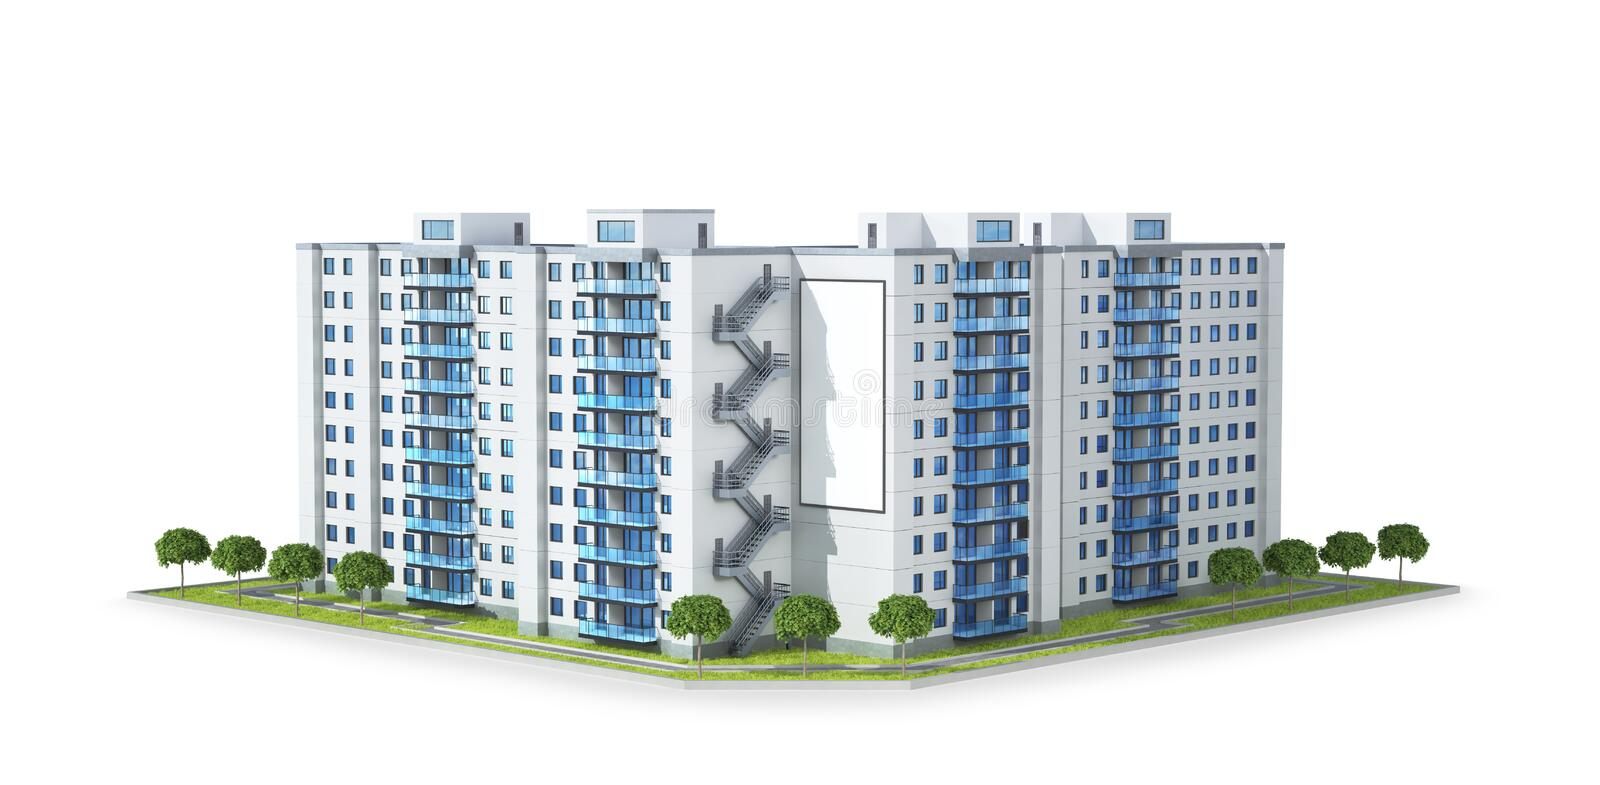 Condominium or modern residential building. Real estate development and the concept of urban growth. stock illustration